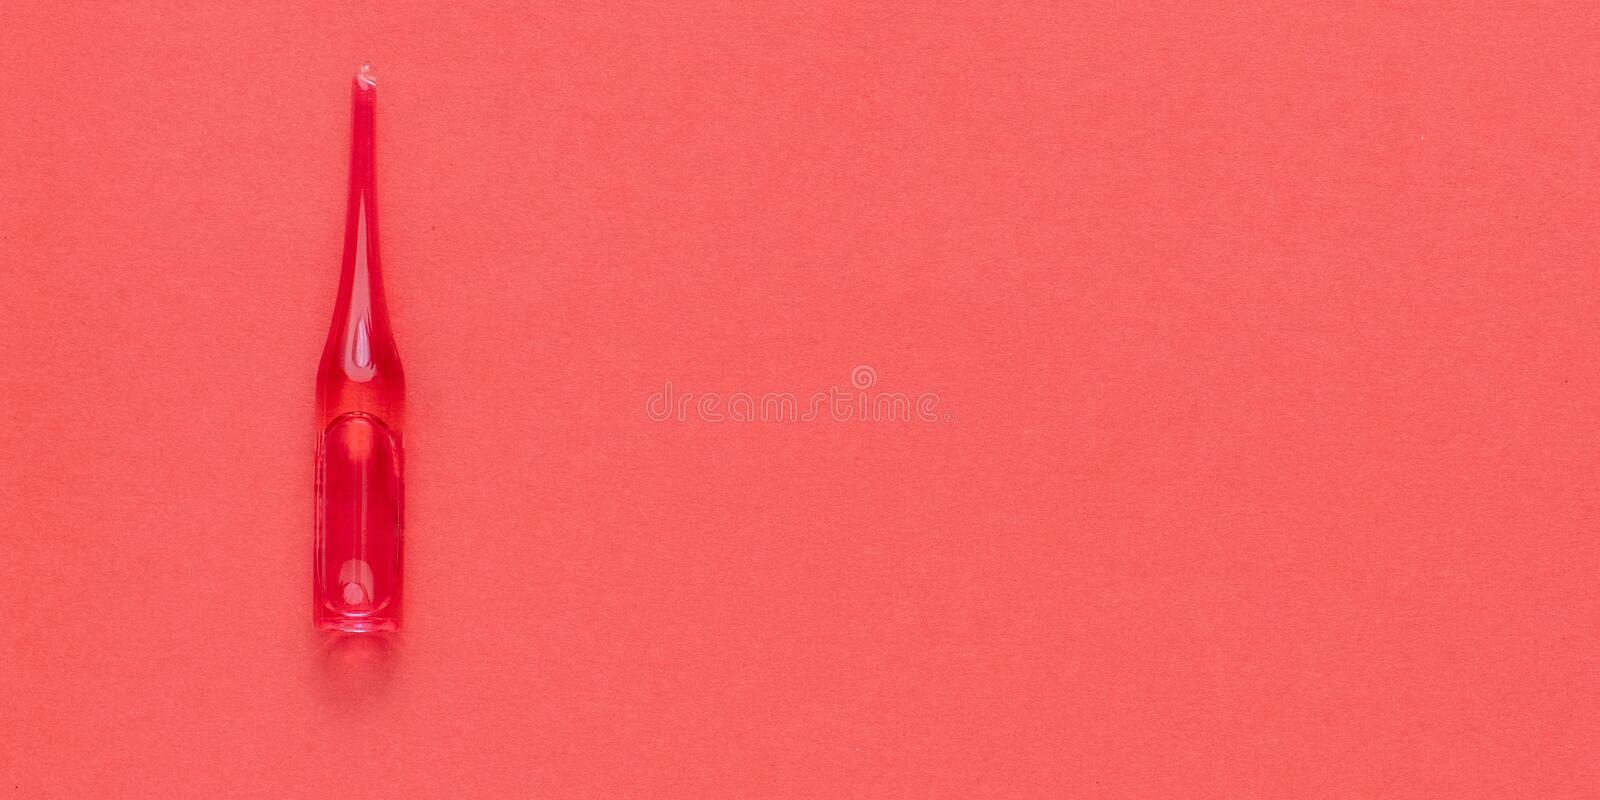 Medical red ampoule on red background. With copy space royalty free stock photo